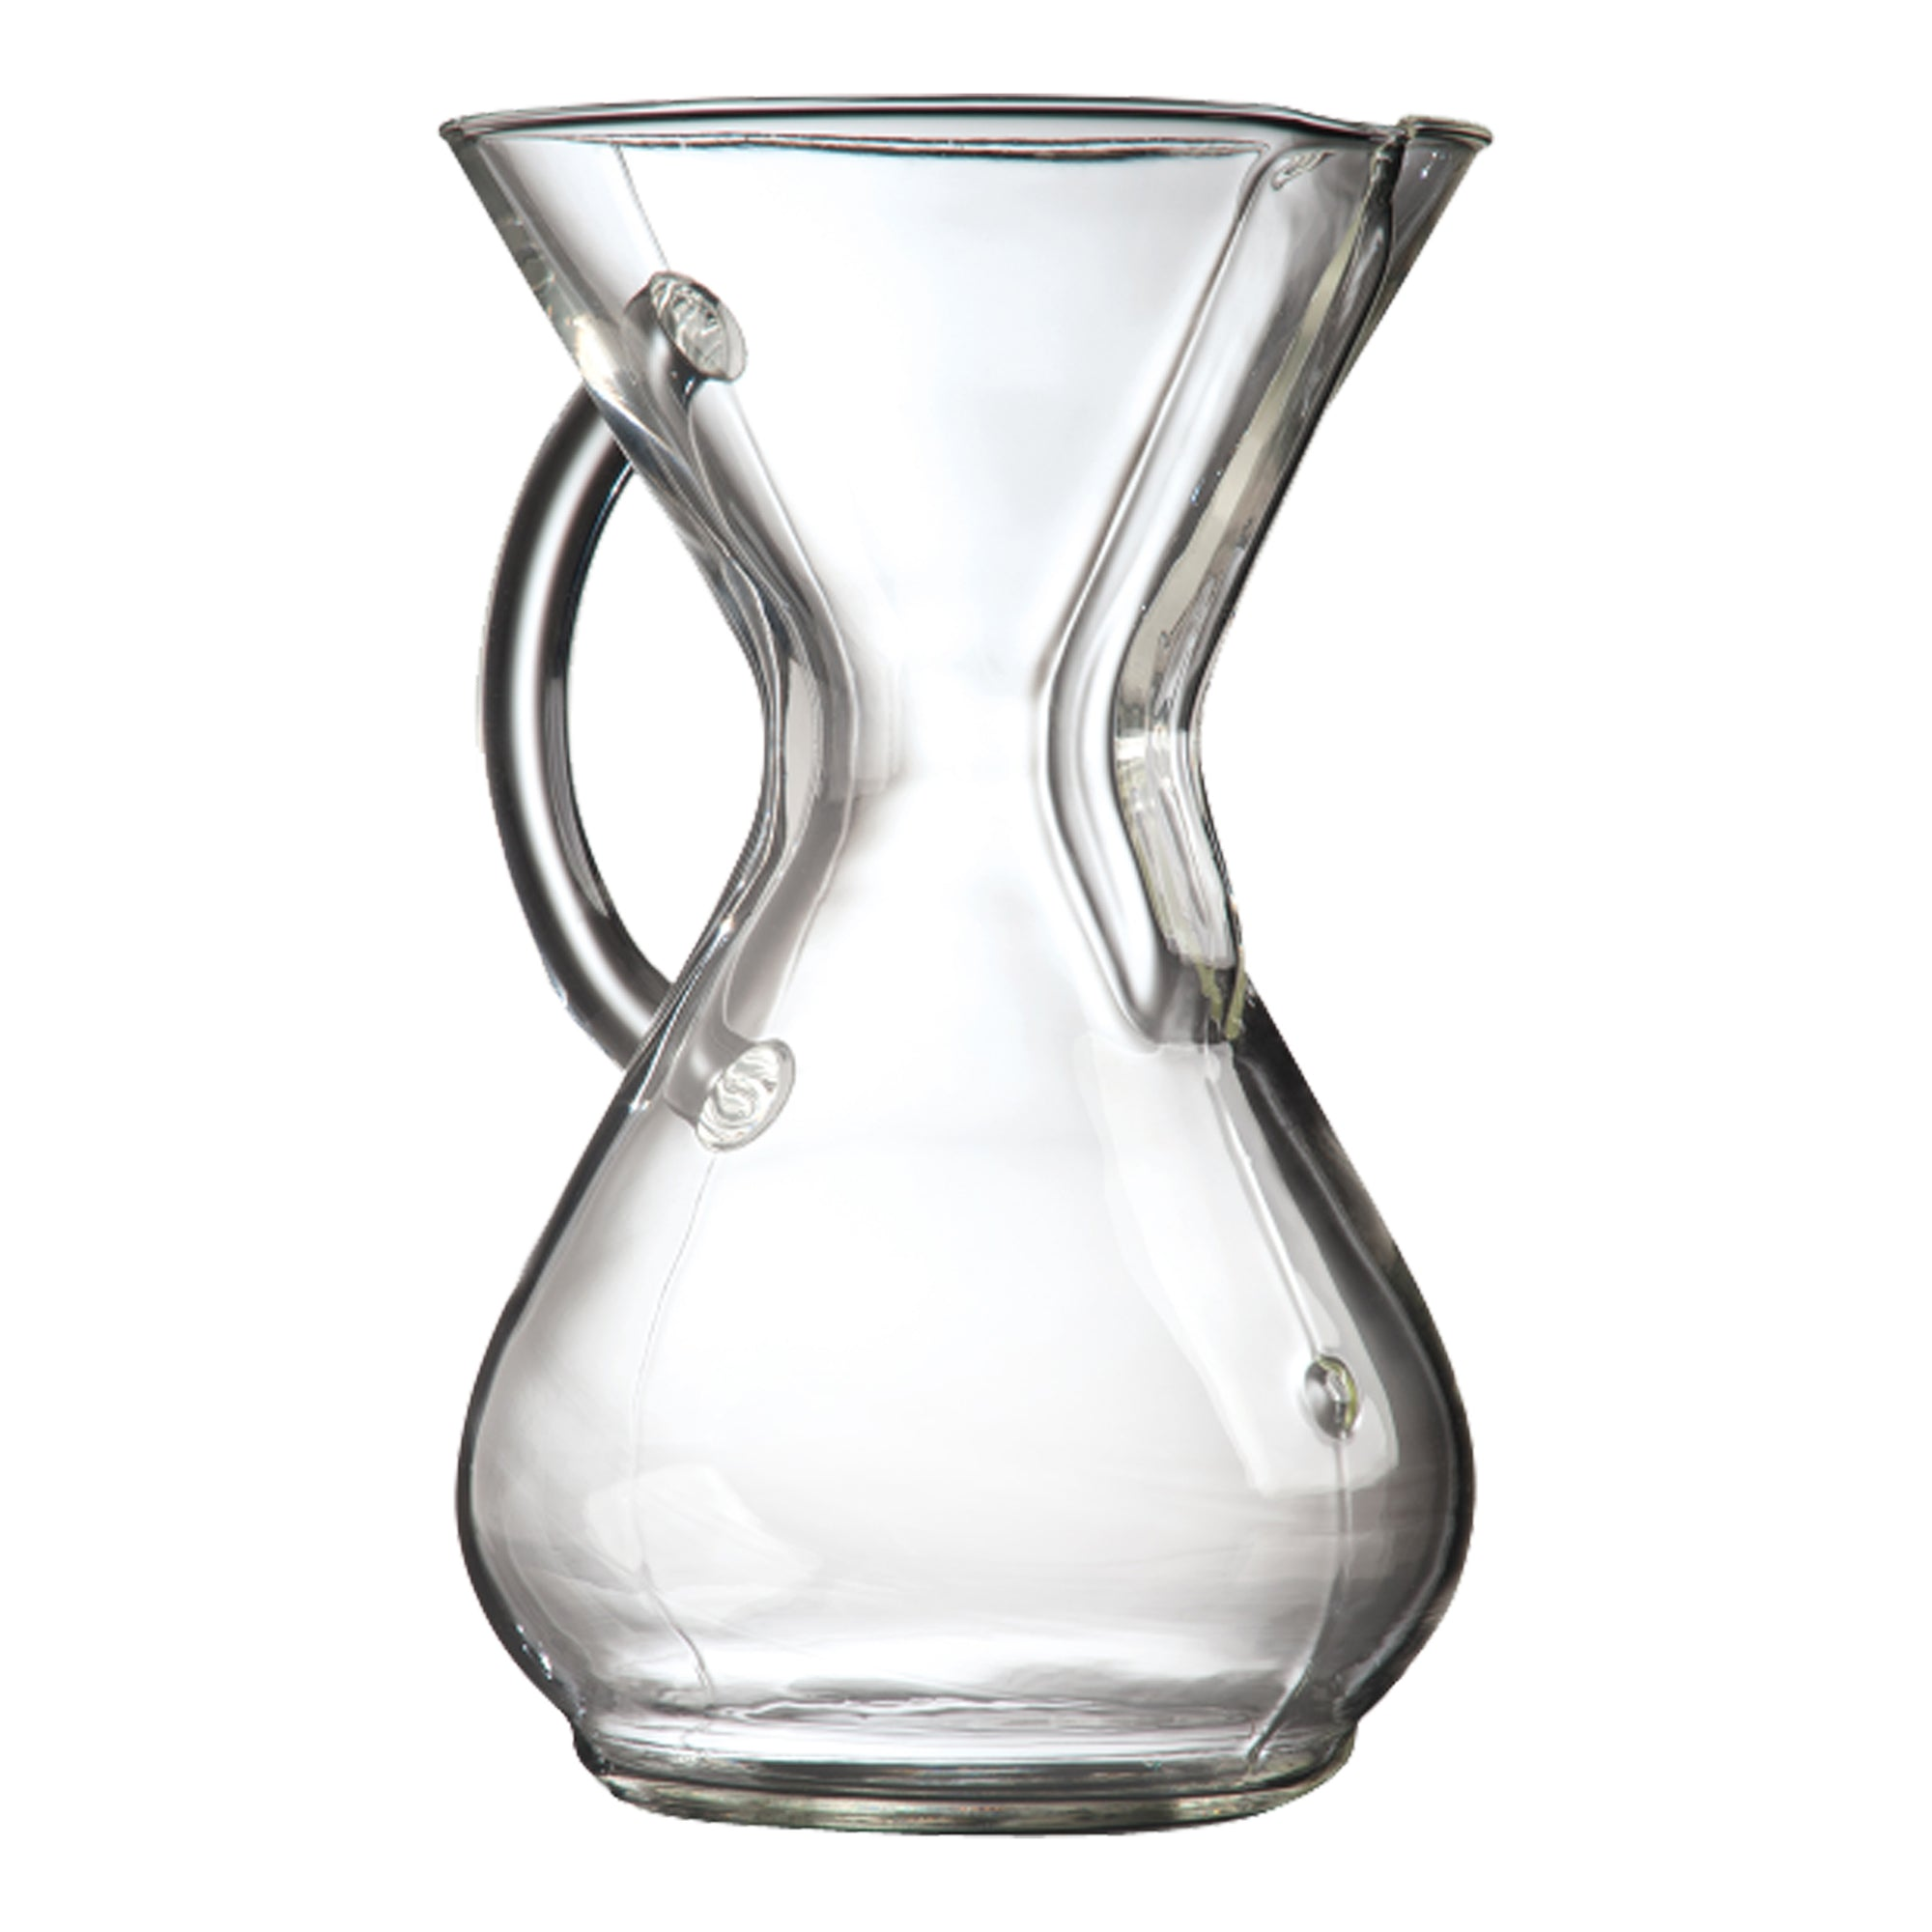 6-cup glass - Chemex - Espresso Gear